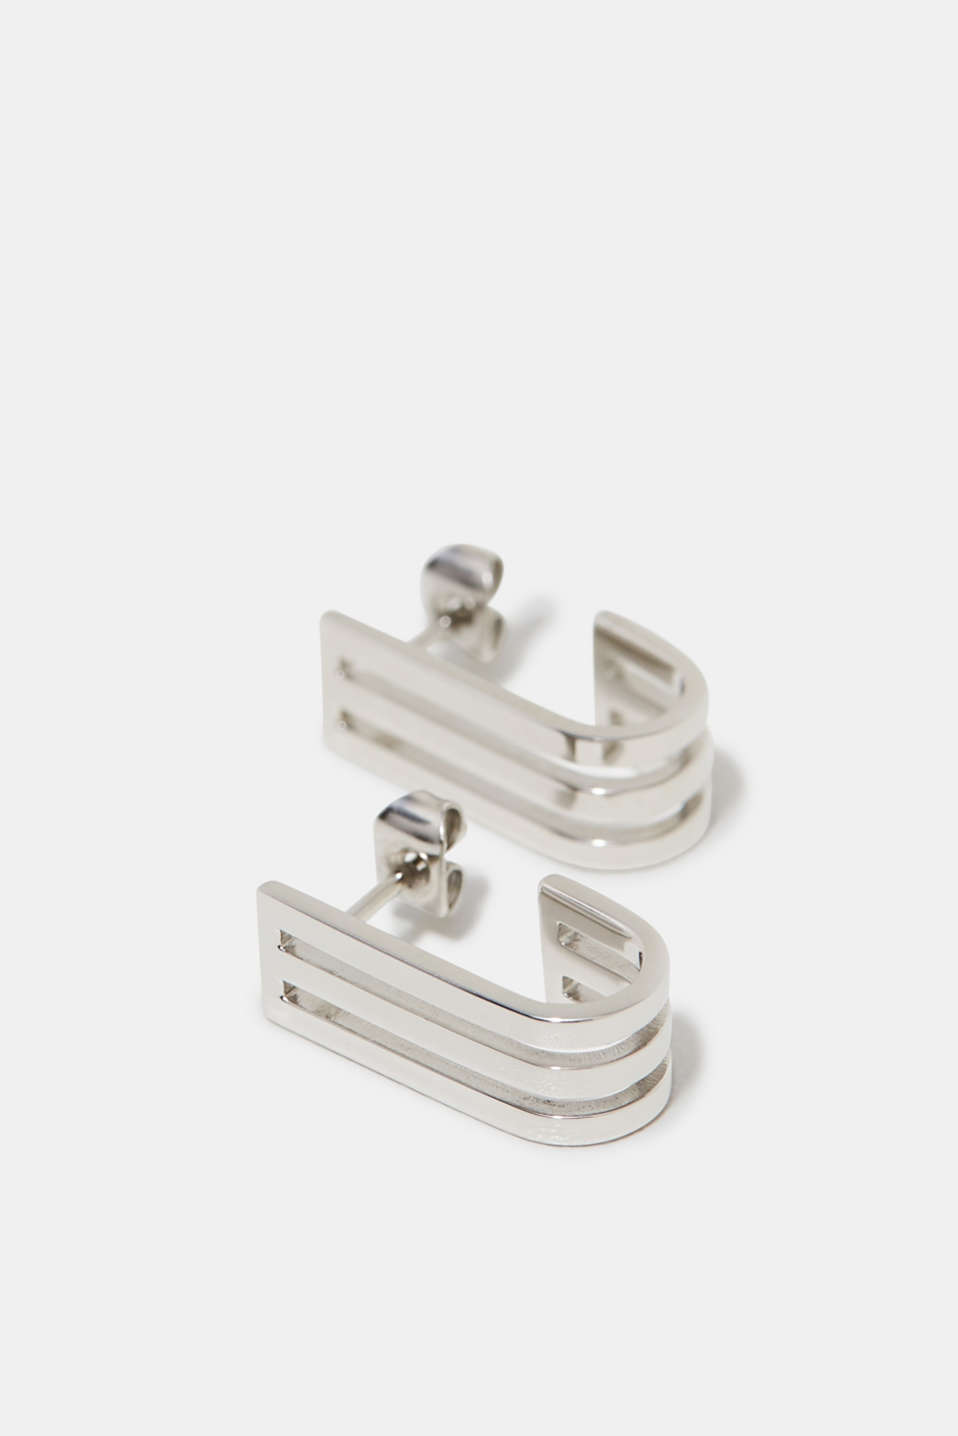 Esprit - Stainless steel earrings in a silver tone